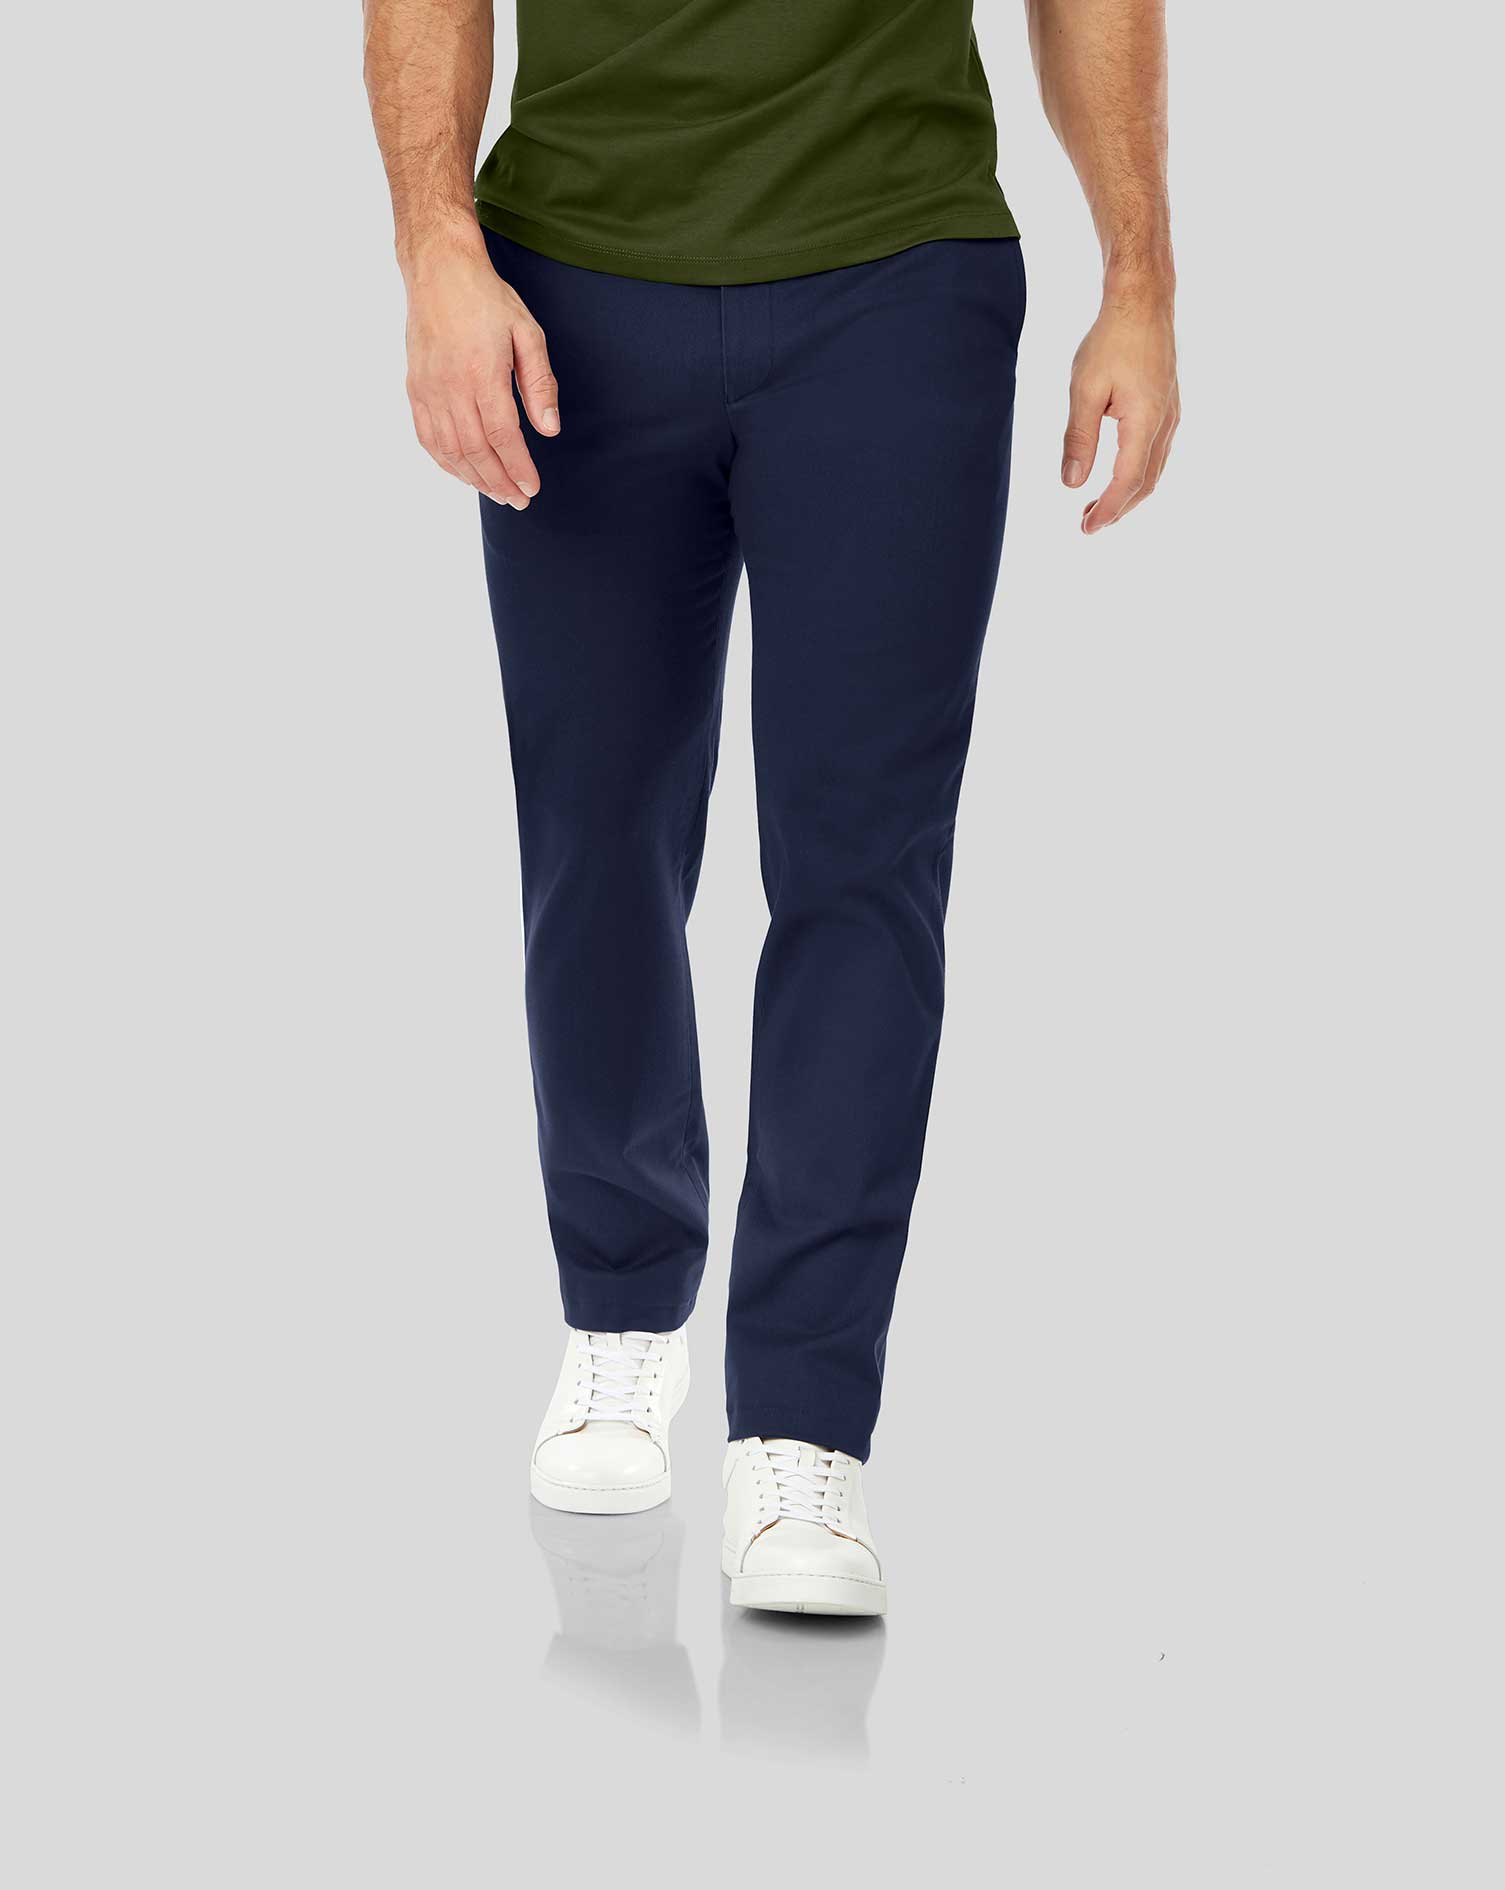 Dark Blue Non-Iron Ultimate Cotton Chino Trousers Size W34 L38 by Charles Tyrwhitt